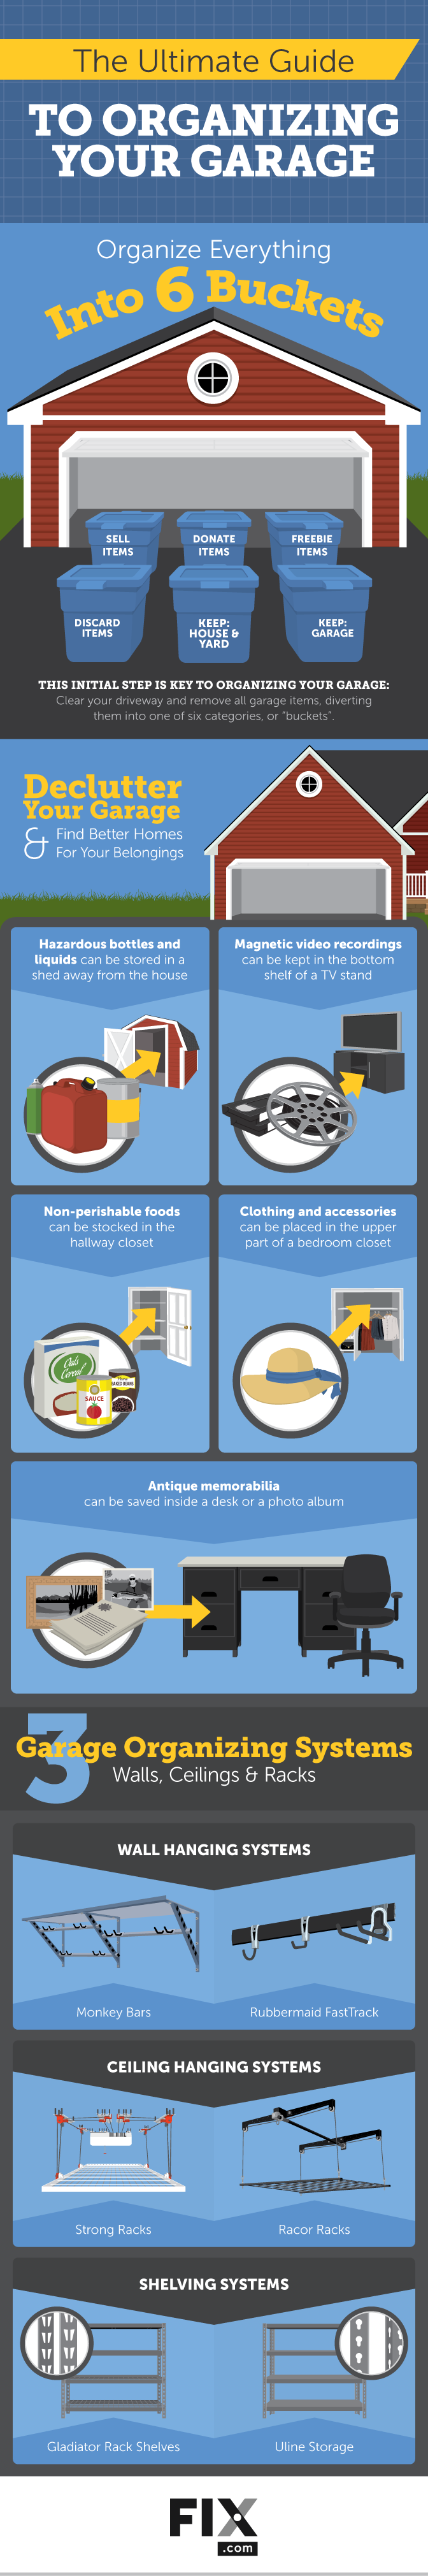 The Ultimate Guide to Organizing Your Garage #infograhic